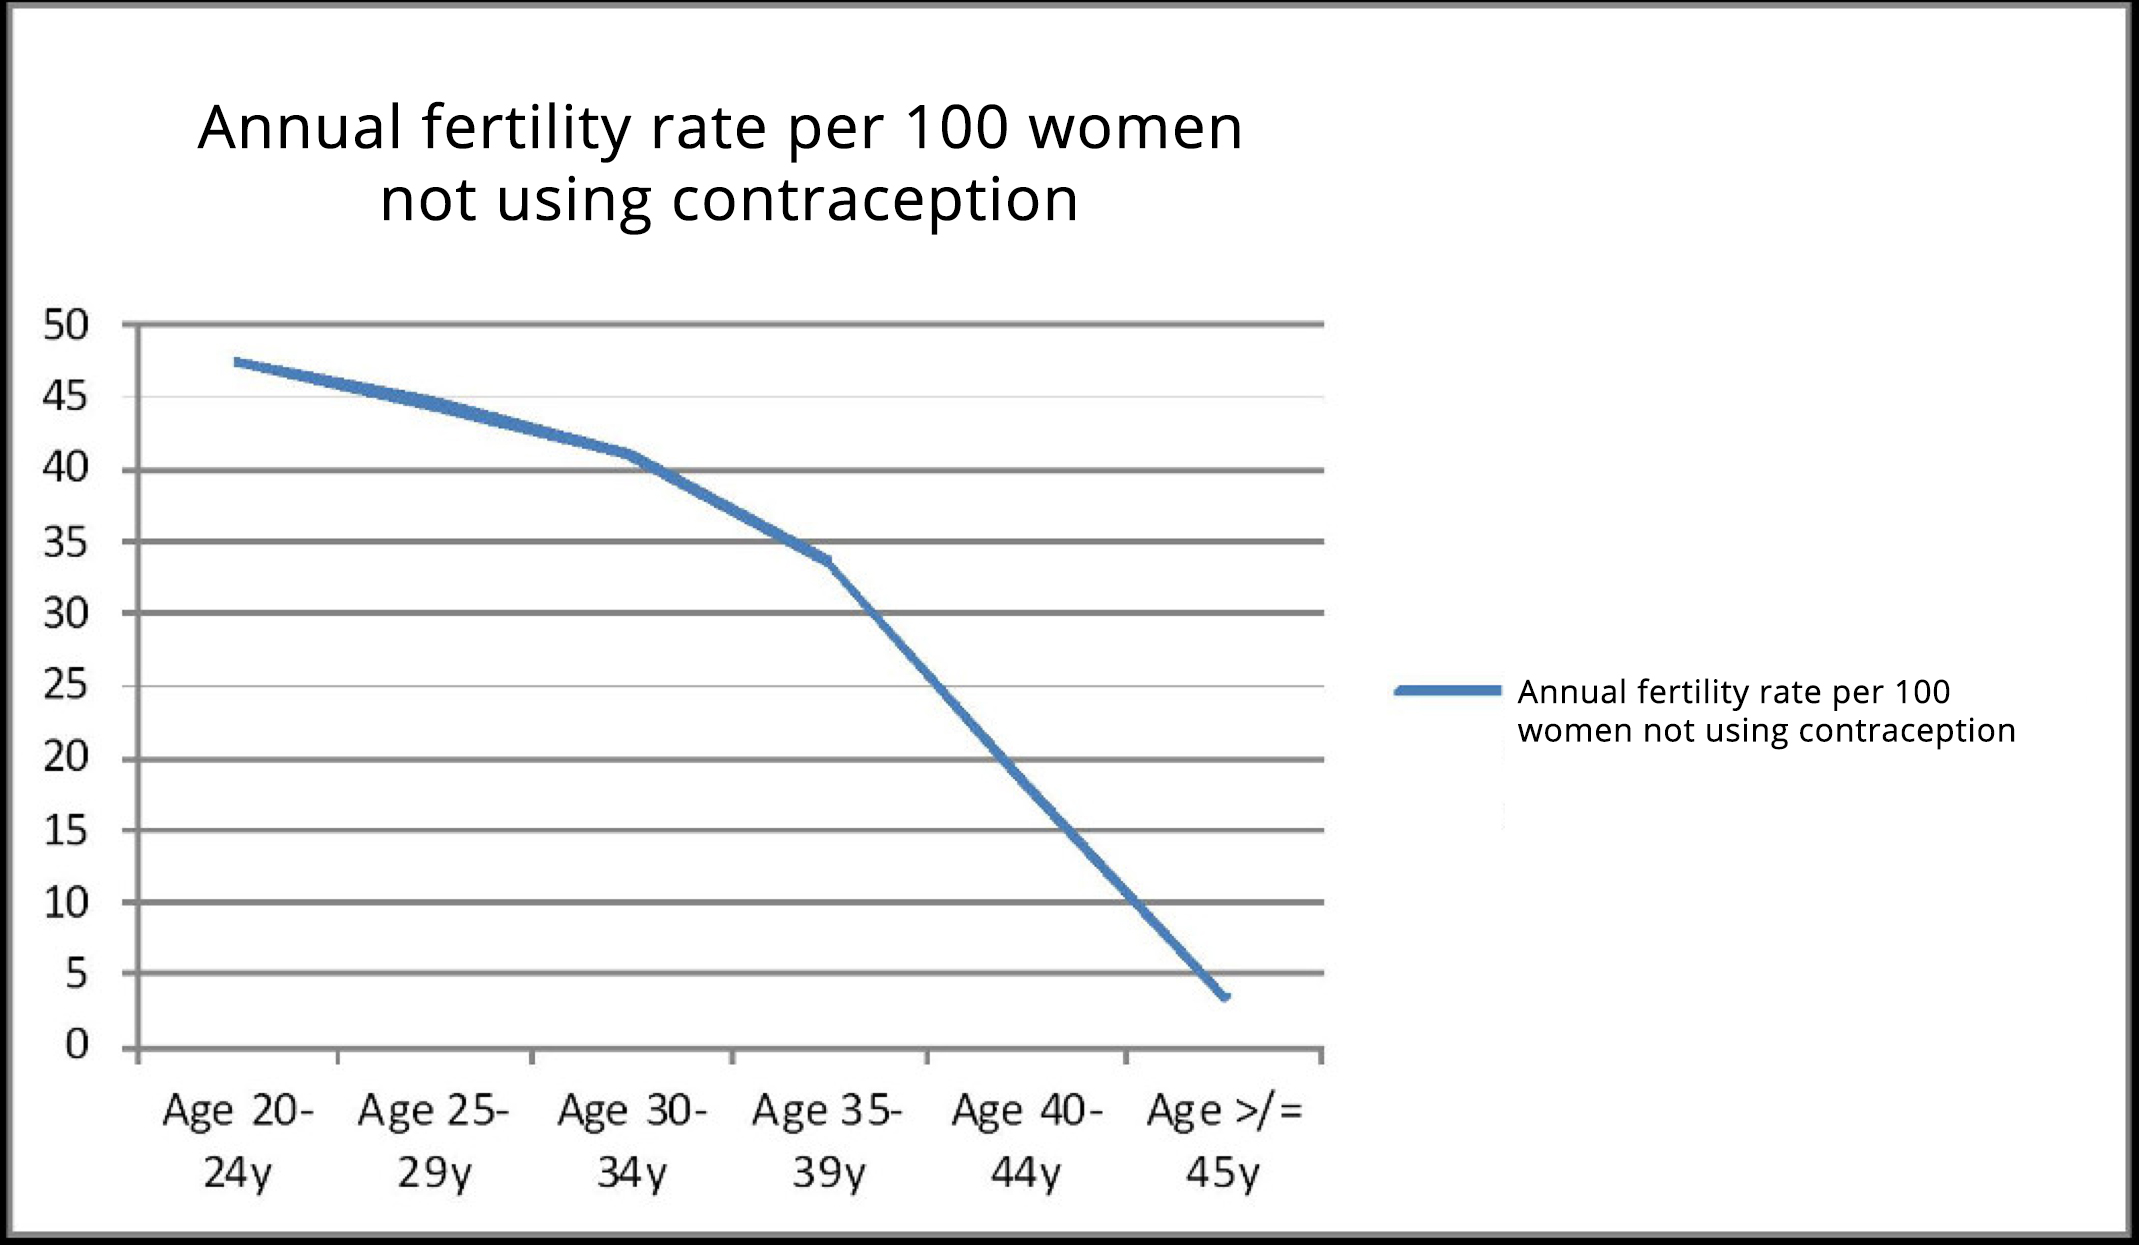 Annual_fertility_rate_per_100_women_not_using_contracepton